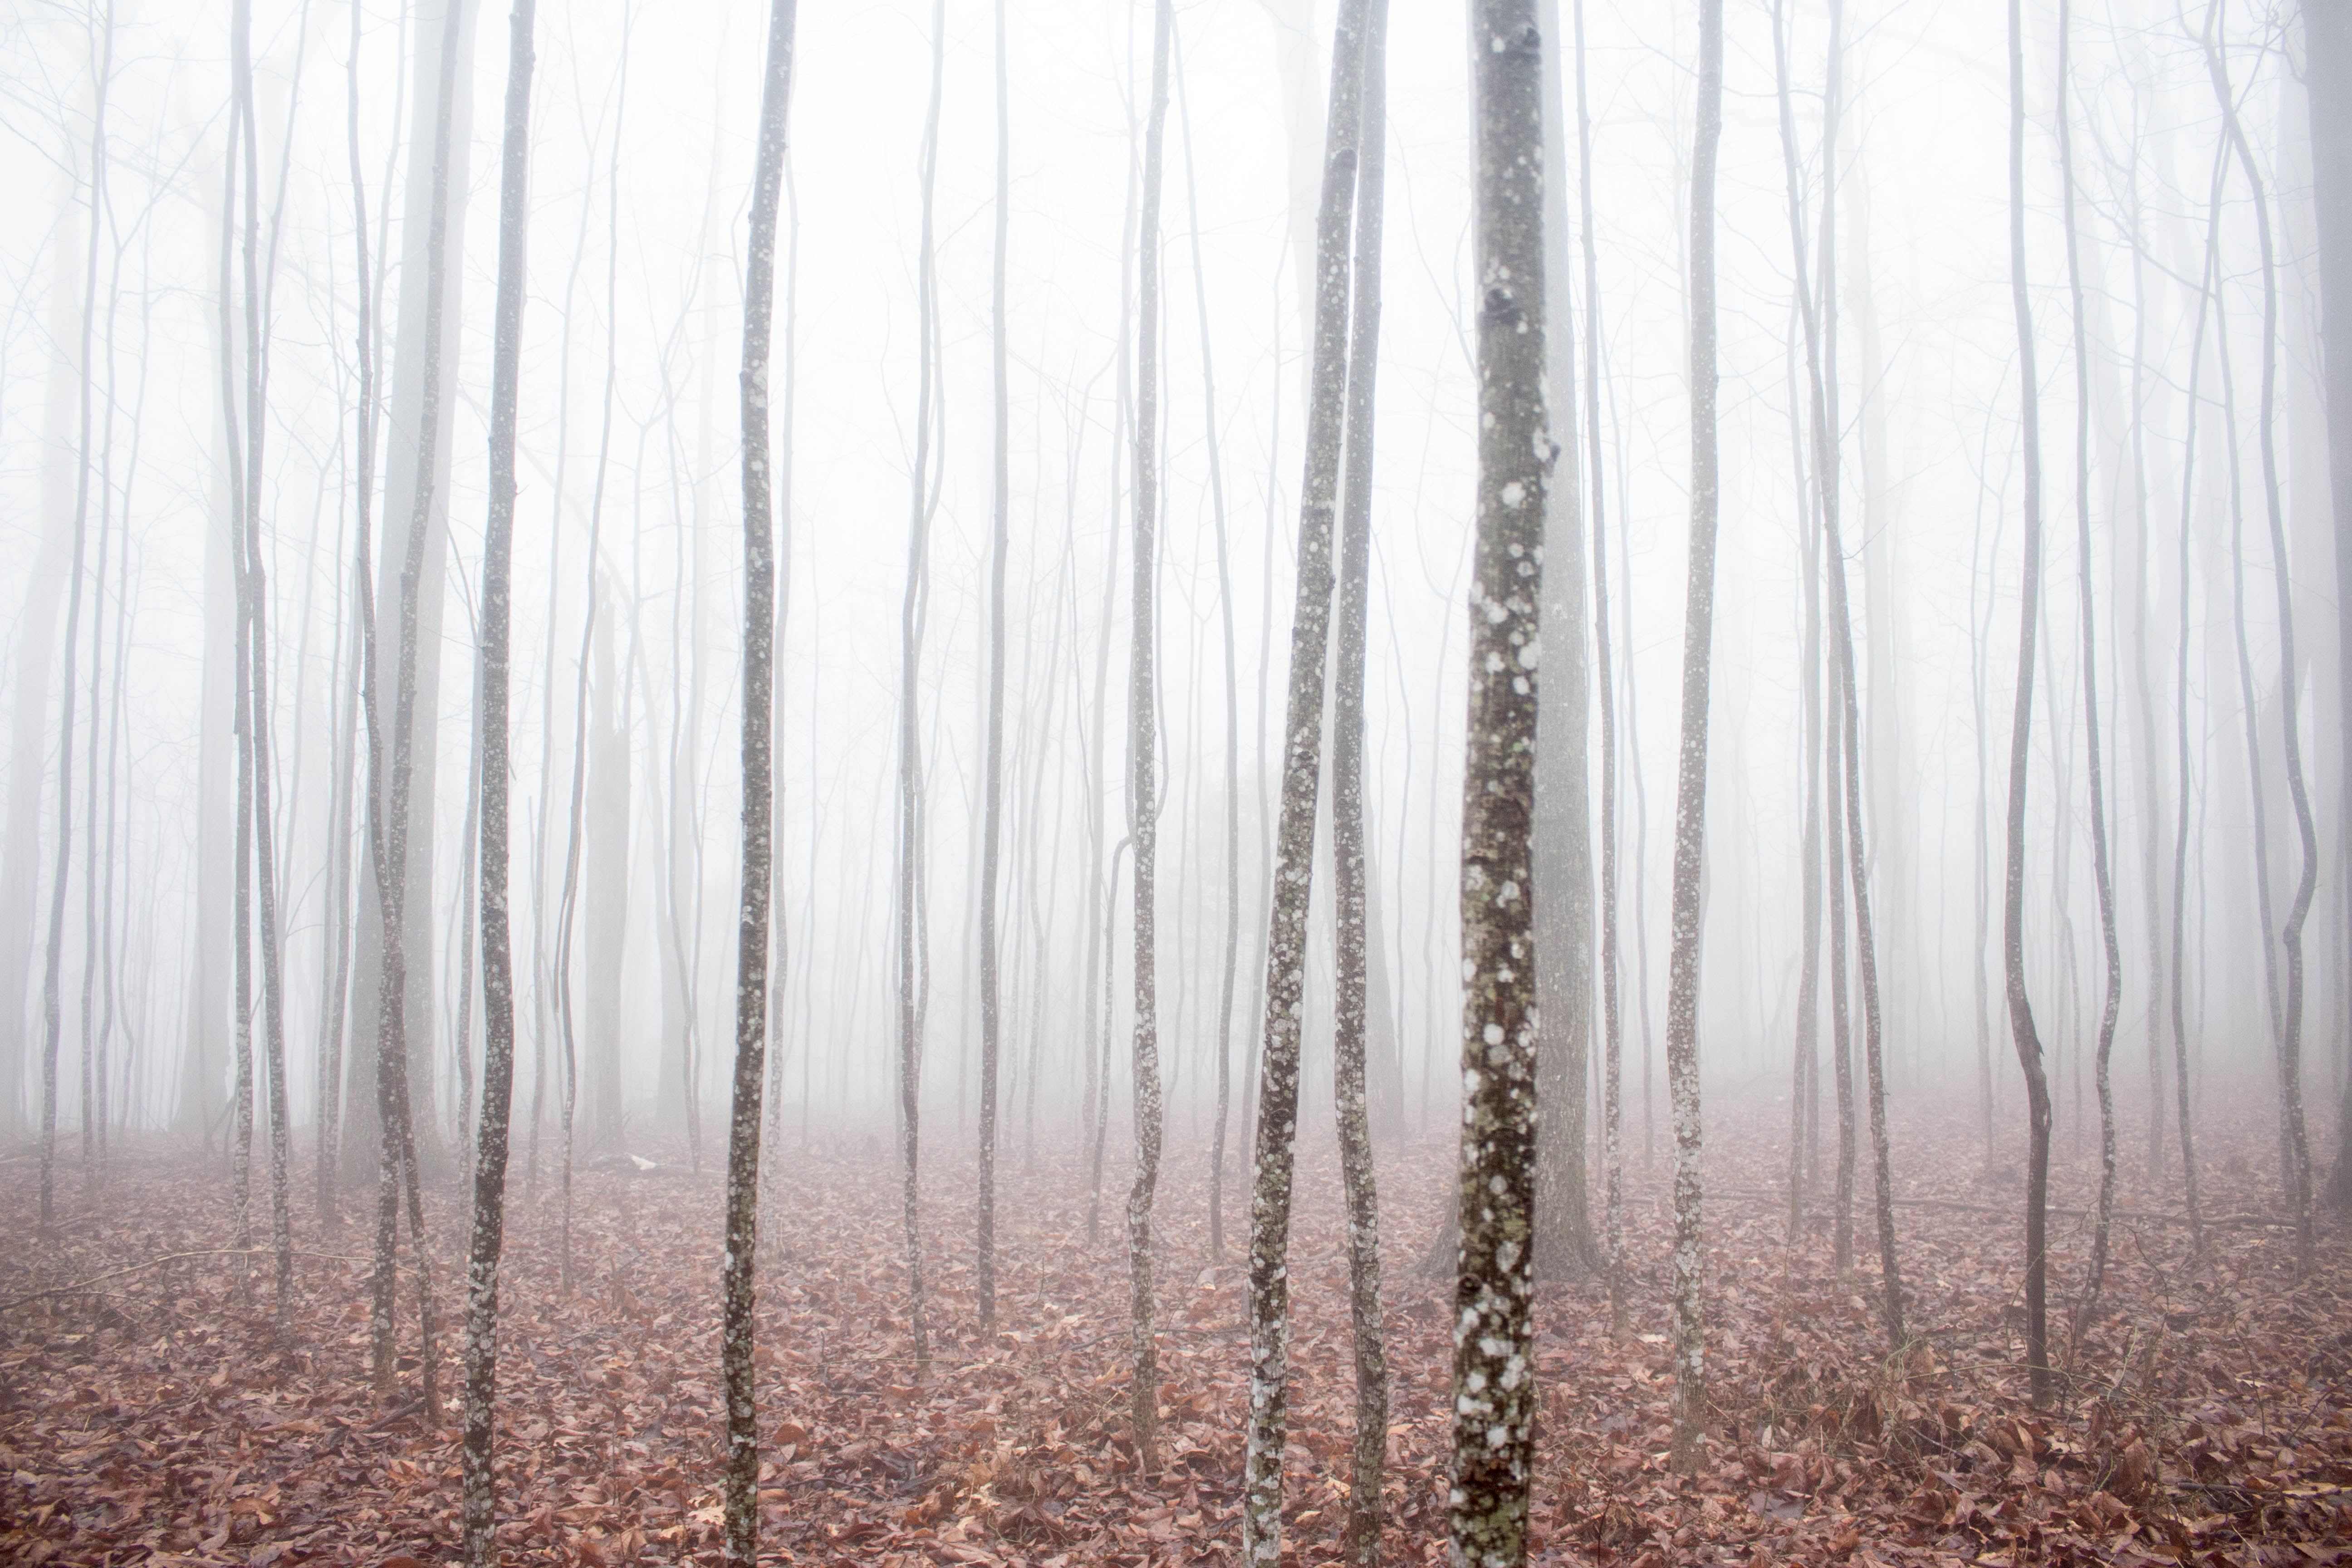 A thick fog in a forest with a thick layer of brown leaves on its floor